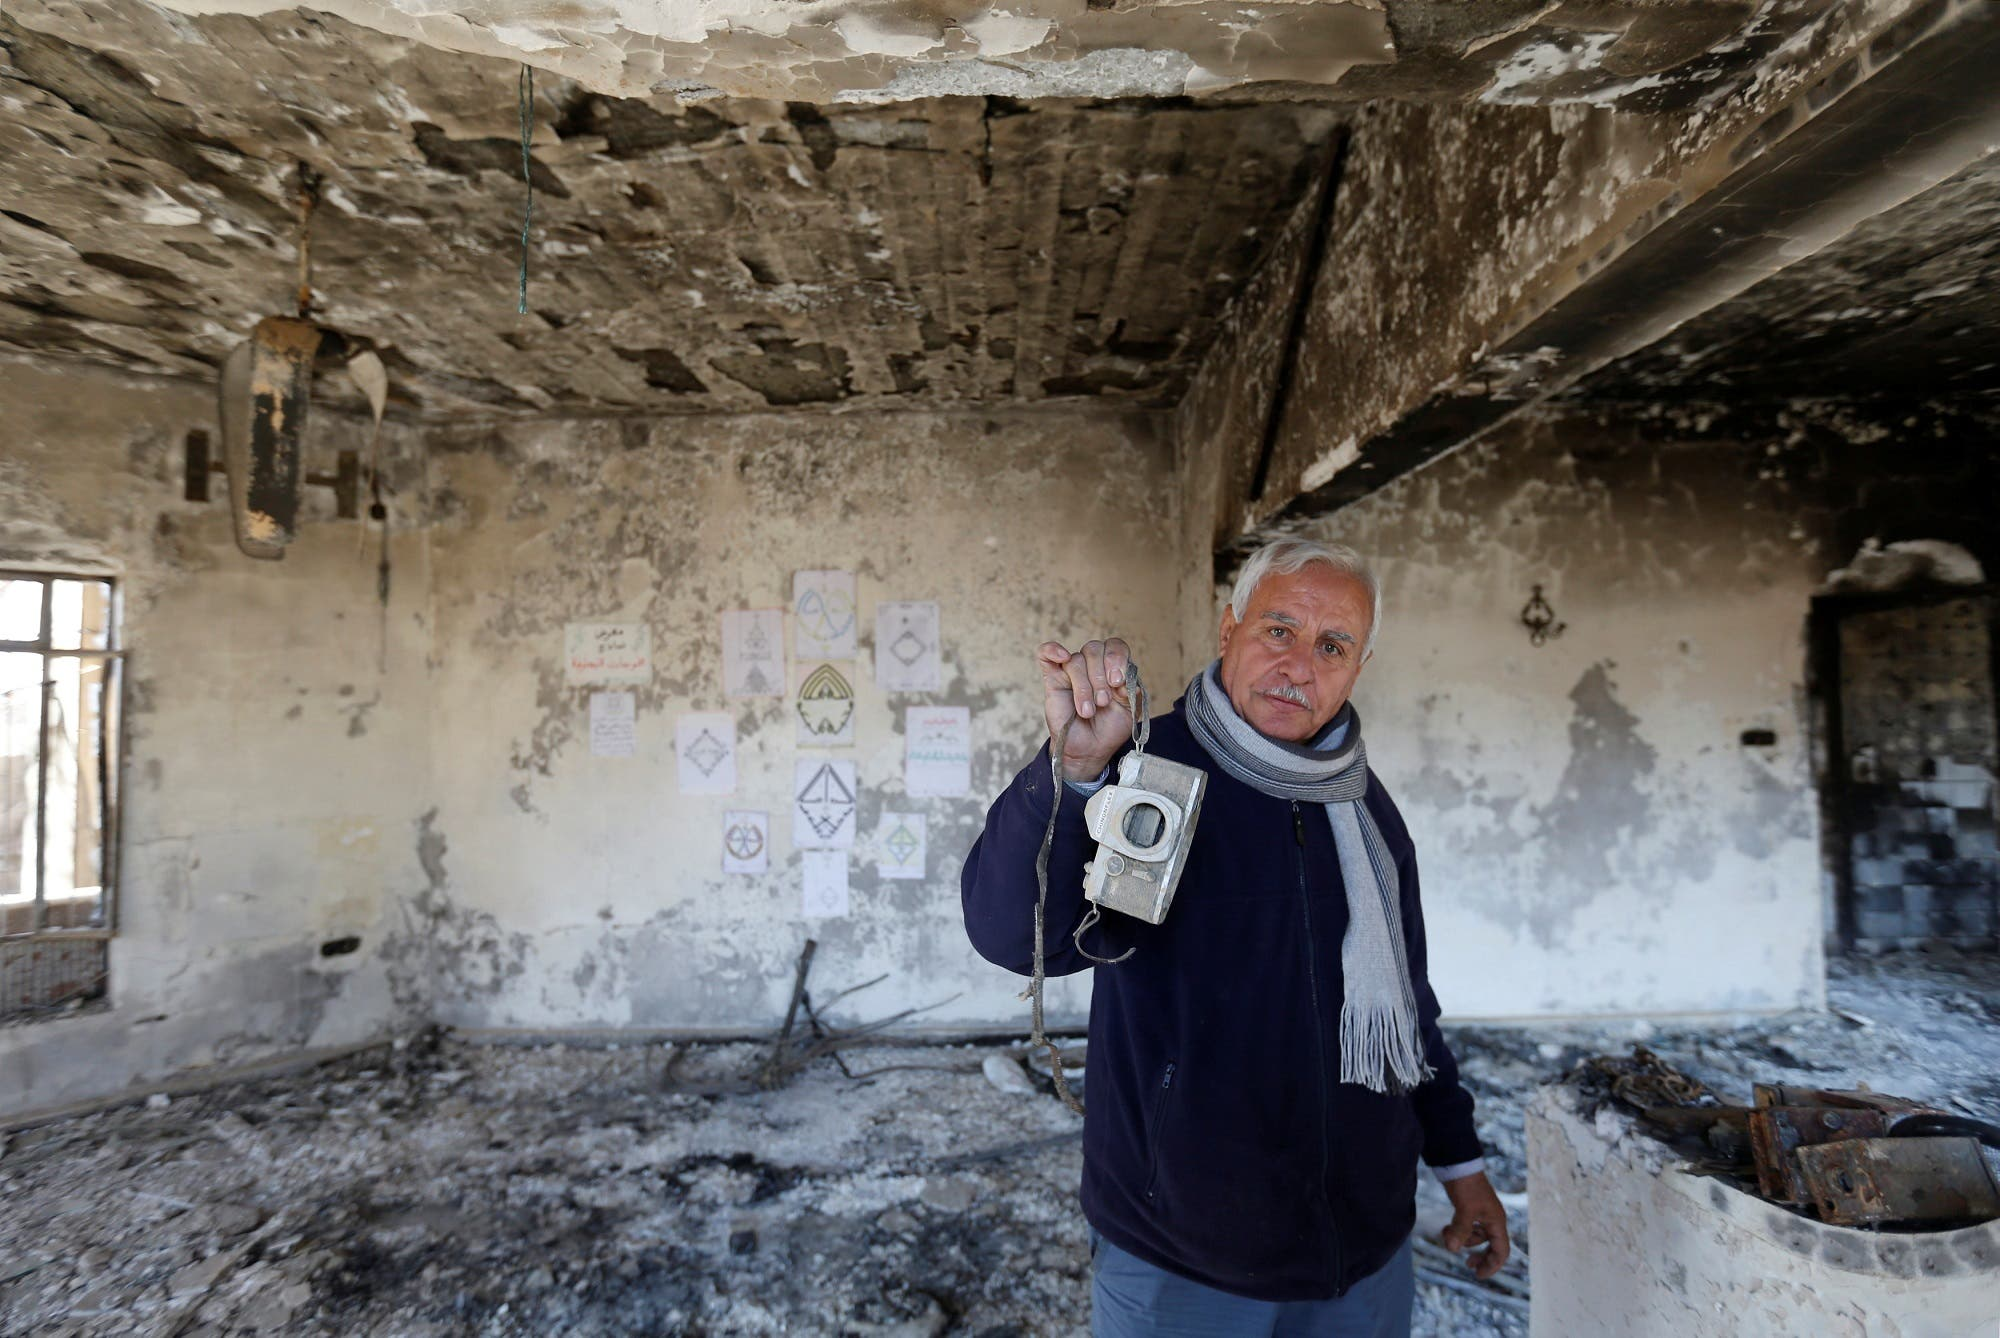 An Iraqi Christian man shows his old camera at his house, which was burned by Islamic State militants before they fled the area, in Qaraqosh, Iraq, February 7, 2017. REUTERS/Muhammad Hamed